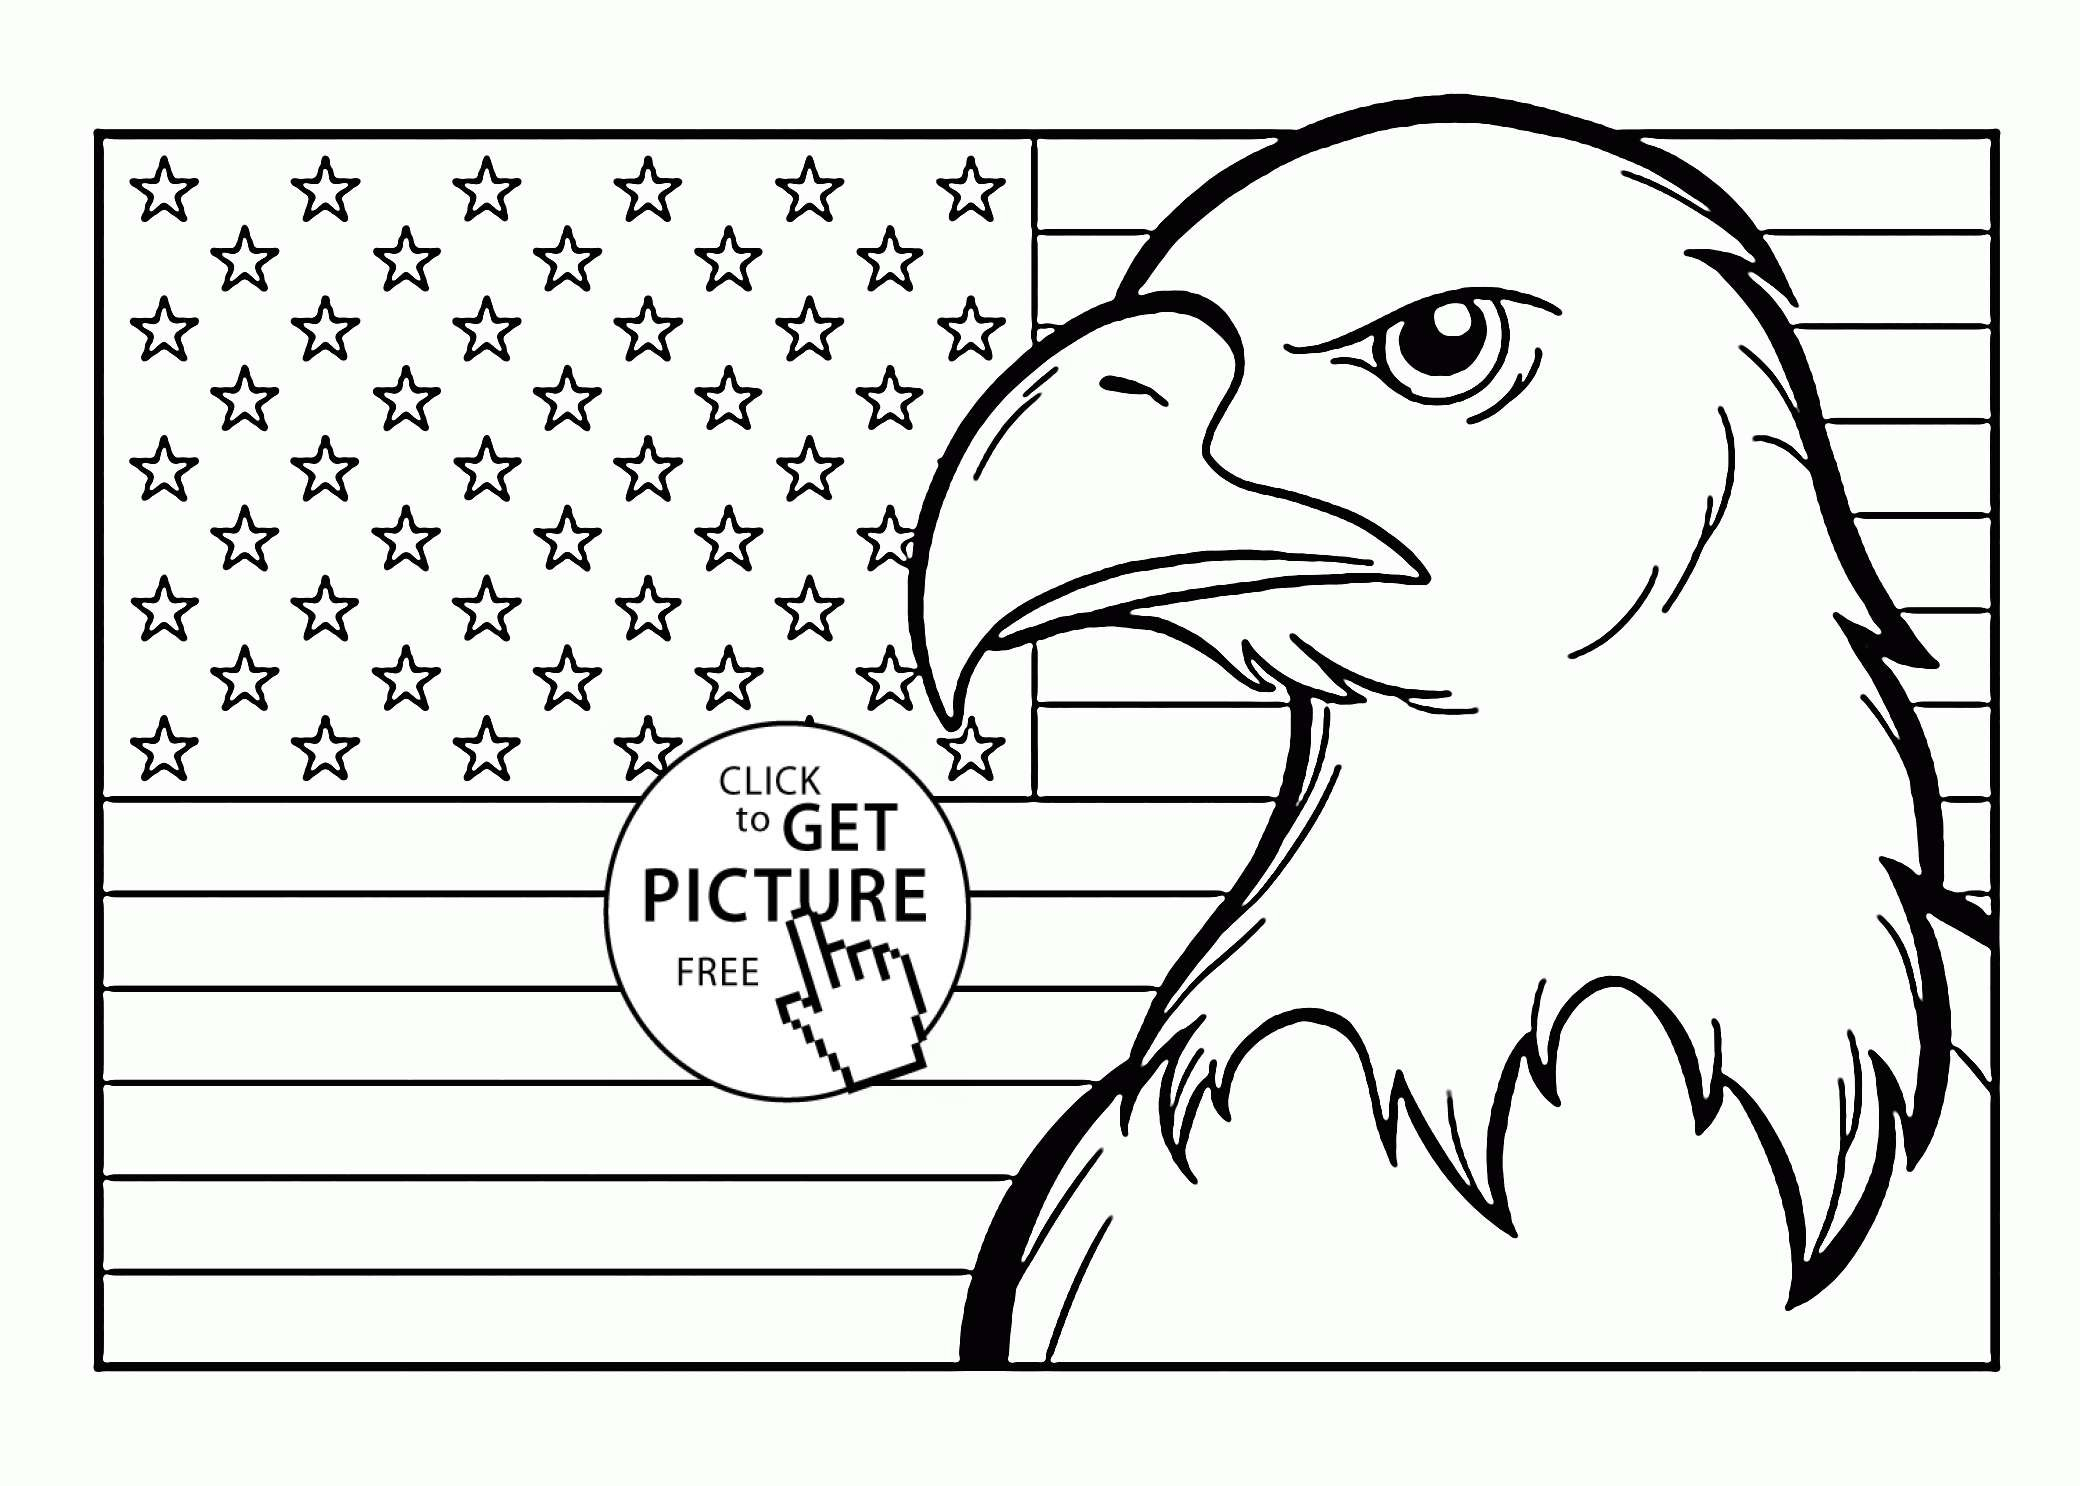 The American Flag Coloring Page Coloring Design First American Flag Coloring Page Best Pages